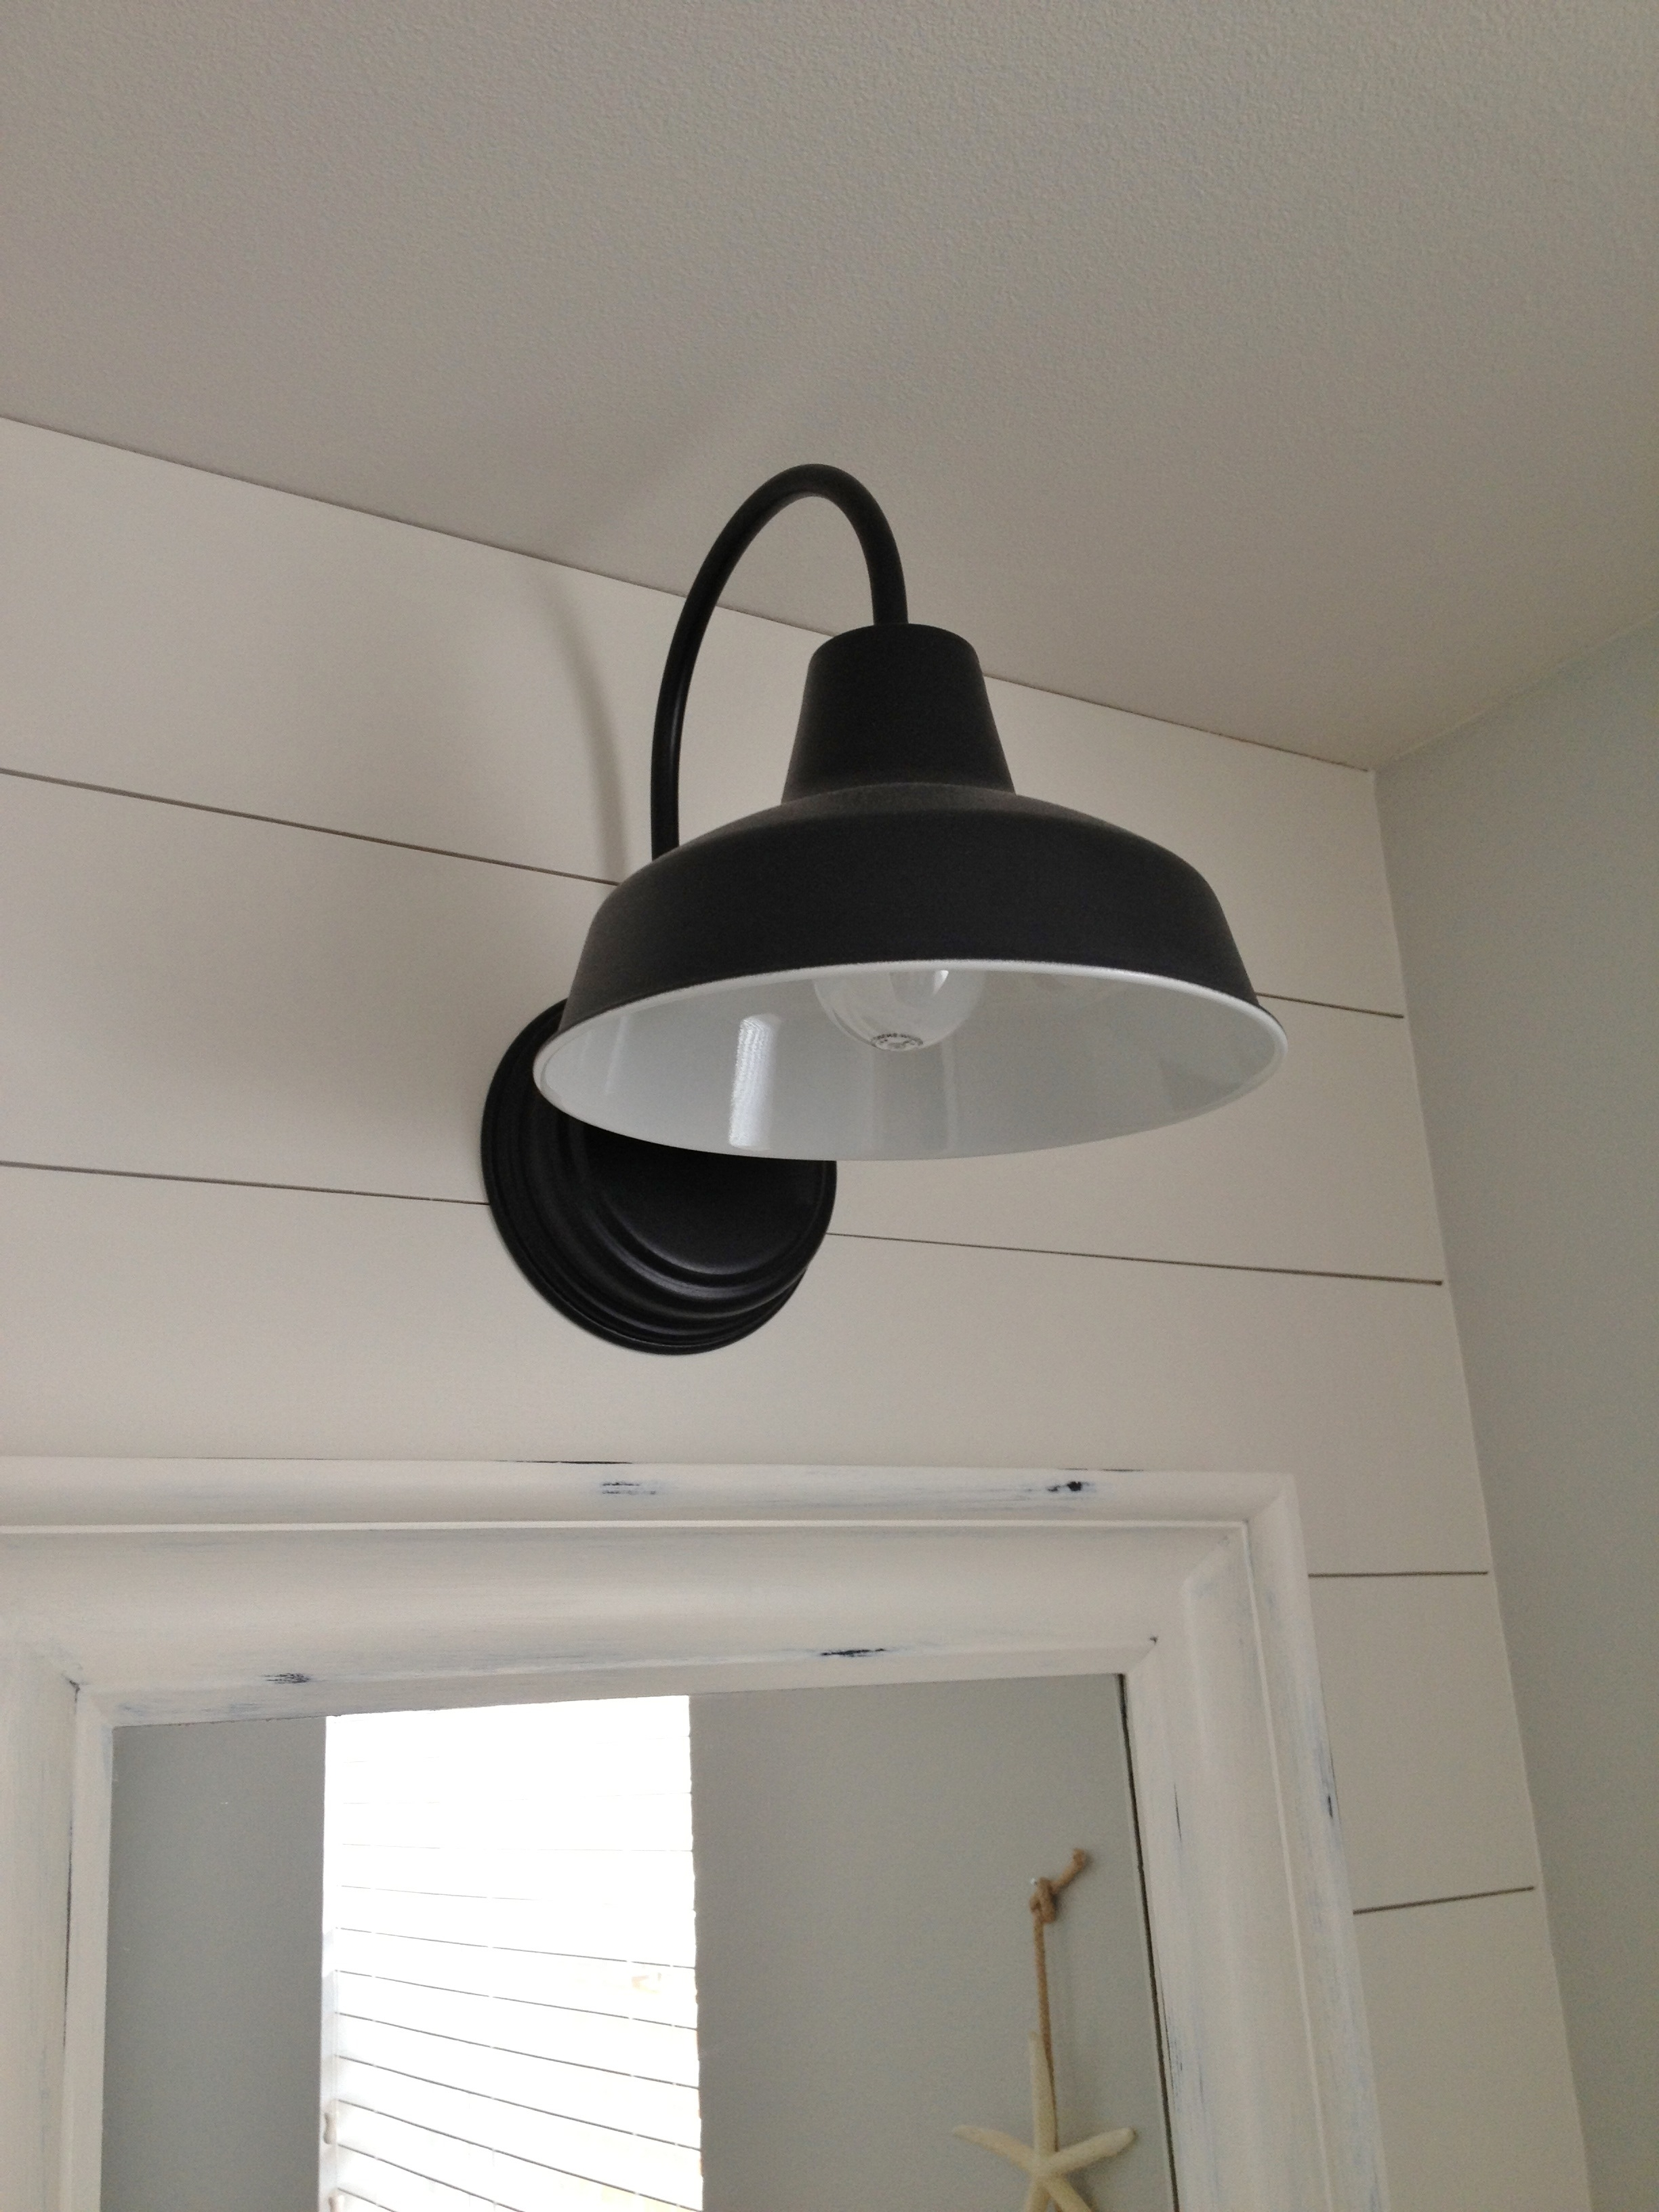 Newest Lamps Design : Plug In Wall Lamp Lighting Lamp Sconce Lamp Outdoor For Cheap Outdoor Wall Lighting Fixtures (View 15 of 20)